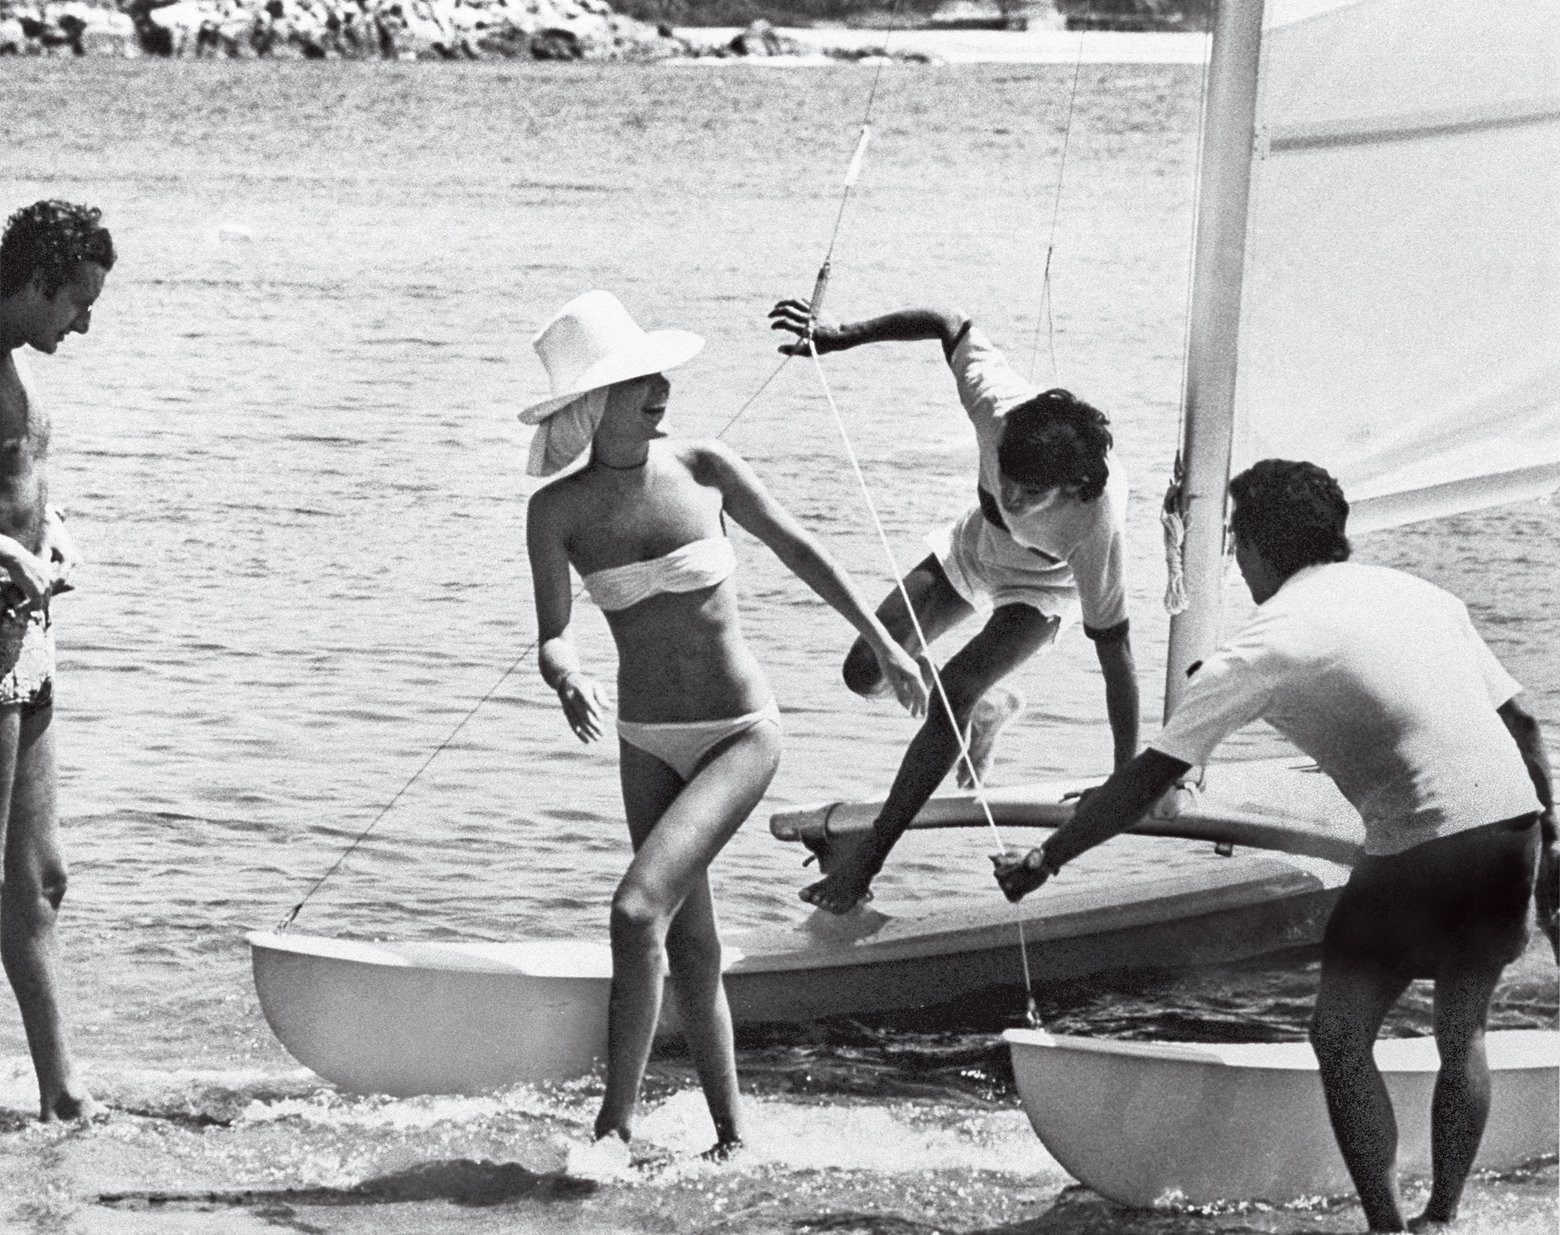 Truman Capote Rendezvous and Shoots in Brazil—Life as a Vogue Assistant in the '70s